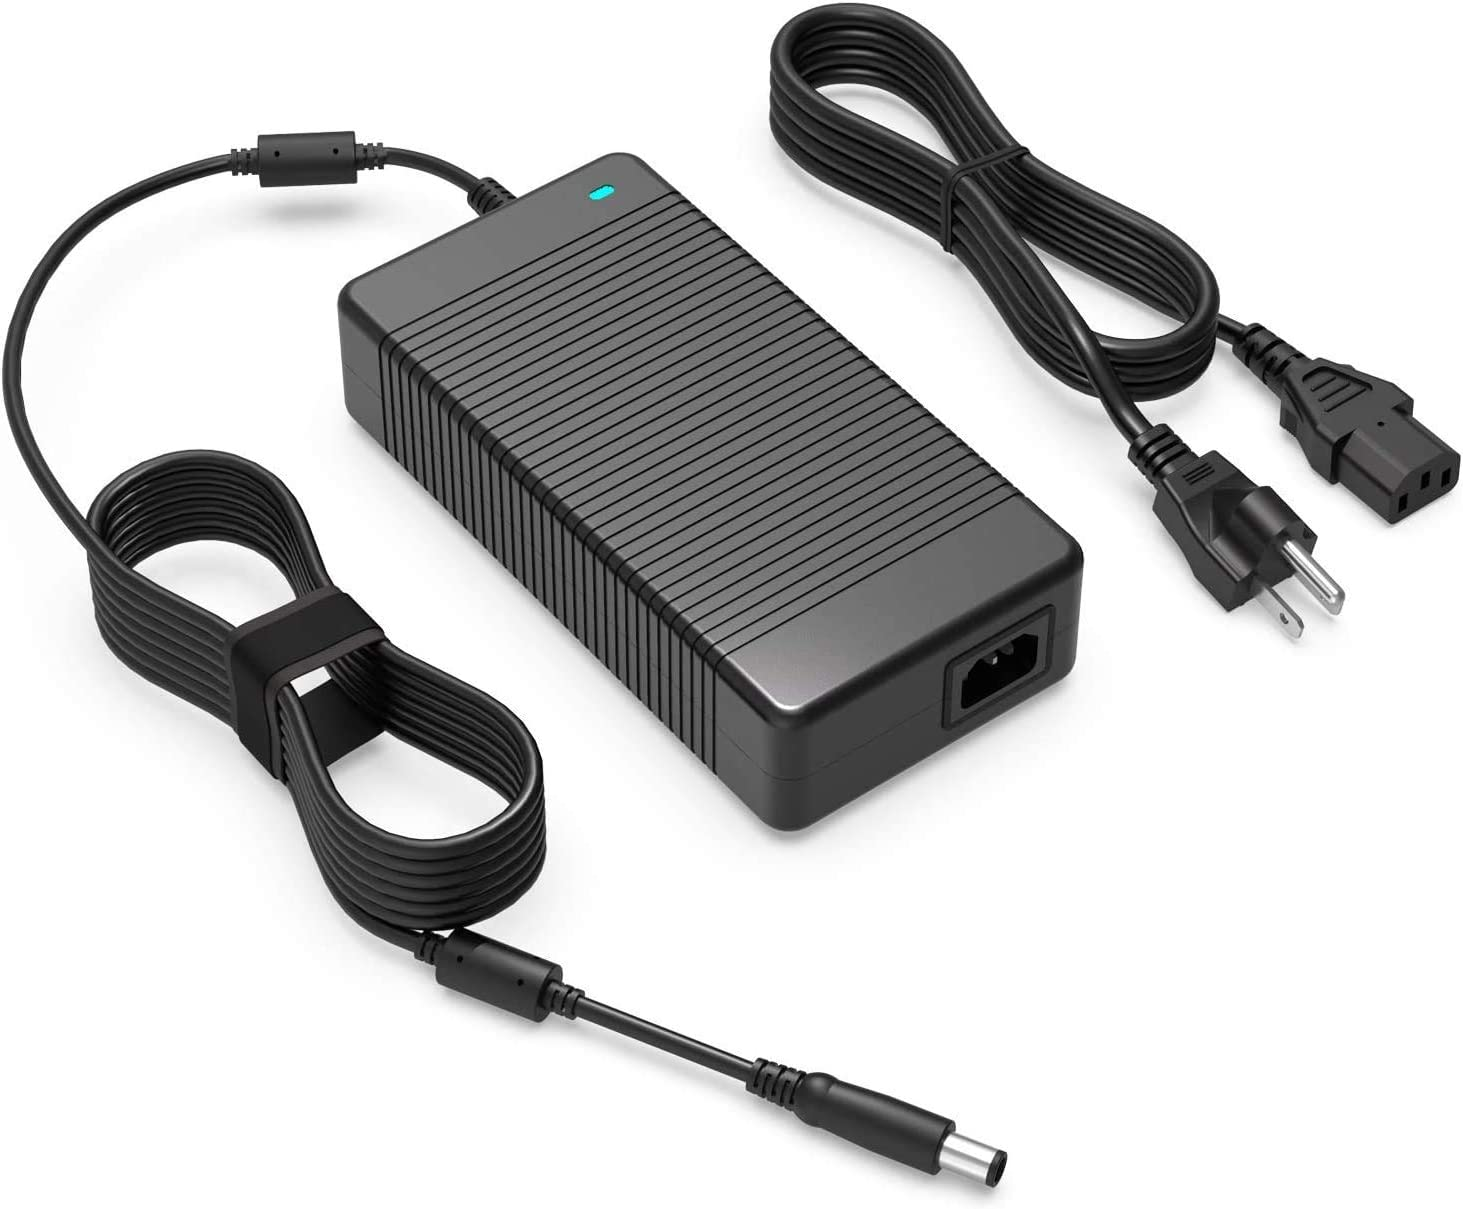 180W 240W AC Charger Fit for Dell Business Thunderbolt Dock TB16 TB15 TB18DC K16A,PerFit Formance Dock WD19DC K20A,E-Port Replicator Adapter Power Supply Cord